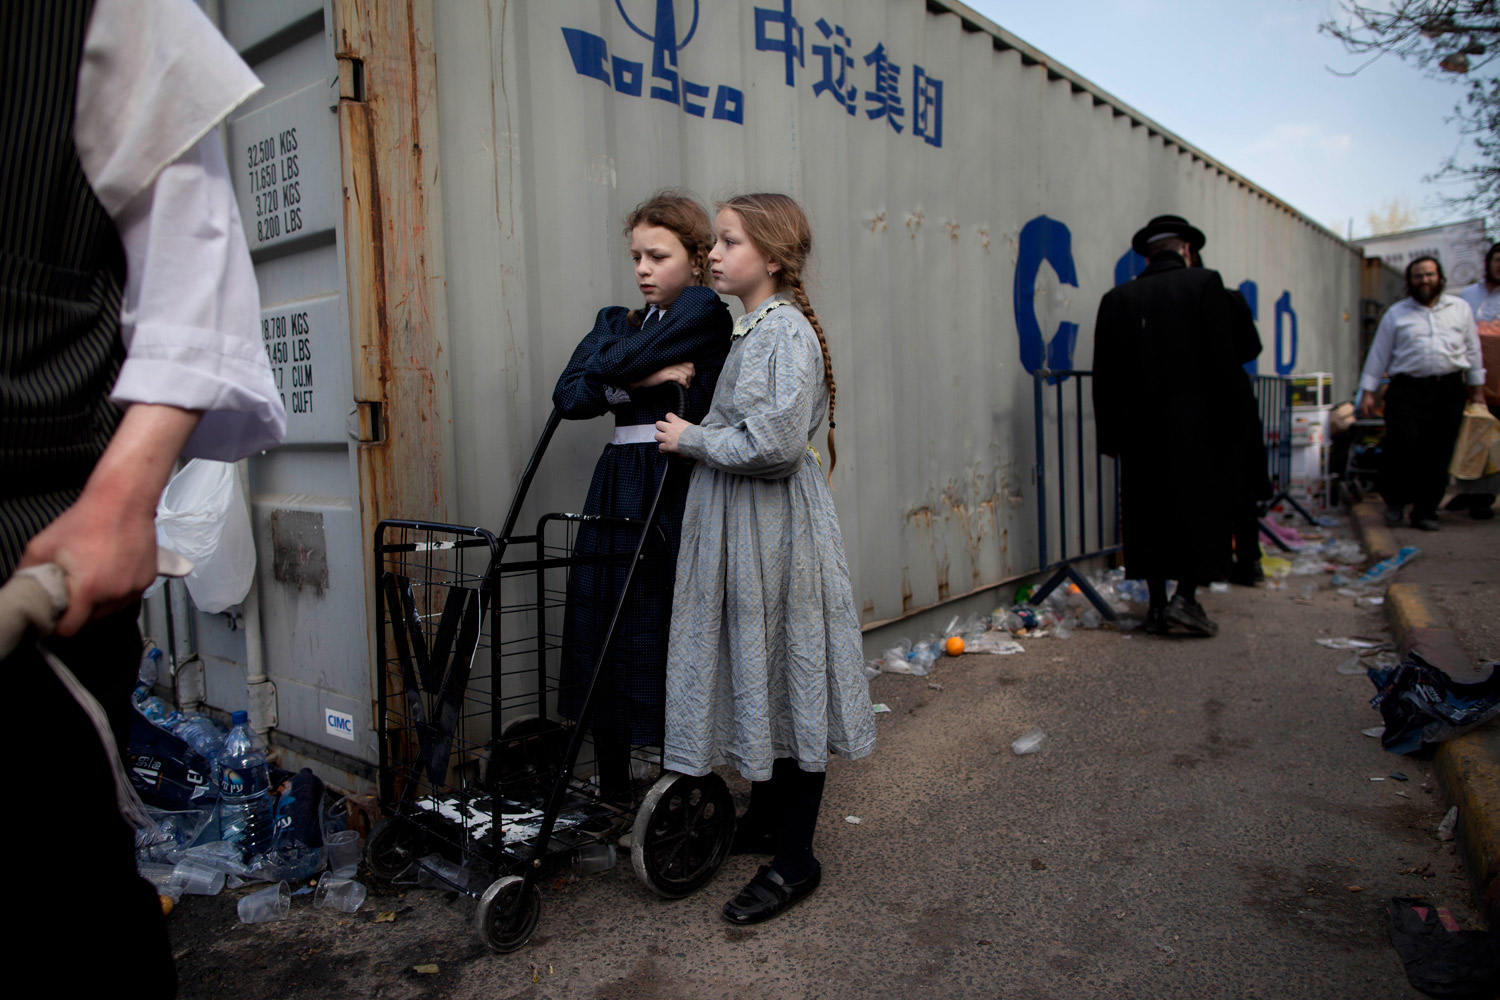 April 3, 2012. Ultra-Orthodox Jewish girls wait for free potatoes to be distributed to large families in preparations for the upcoming Passover holiday in Jerusalem. The week-long festival which commemorates the exodus of the ancient Hebrews from Egypt begins on April 6.